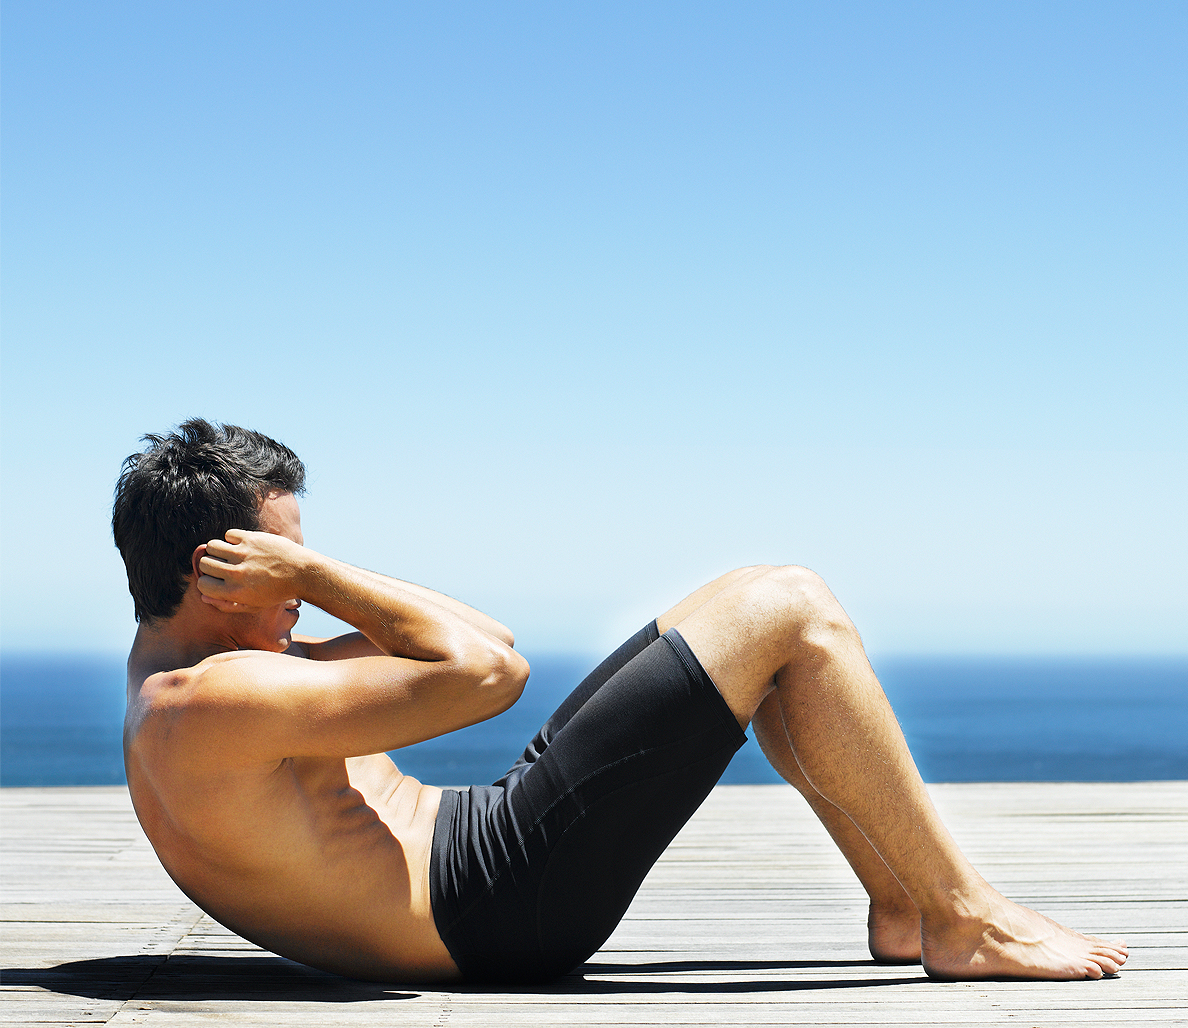 5 Bodyweight Exercises You Should Never Do